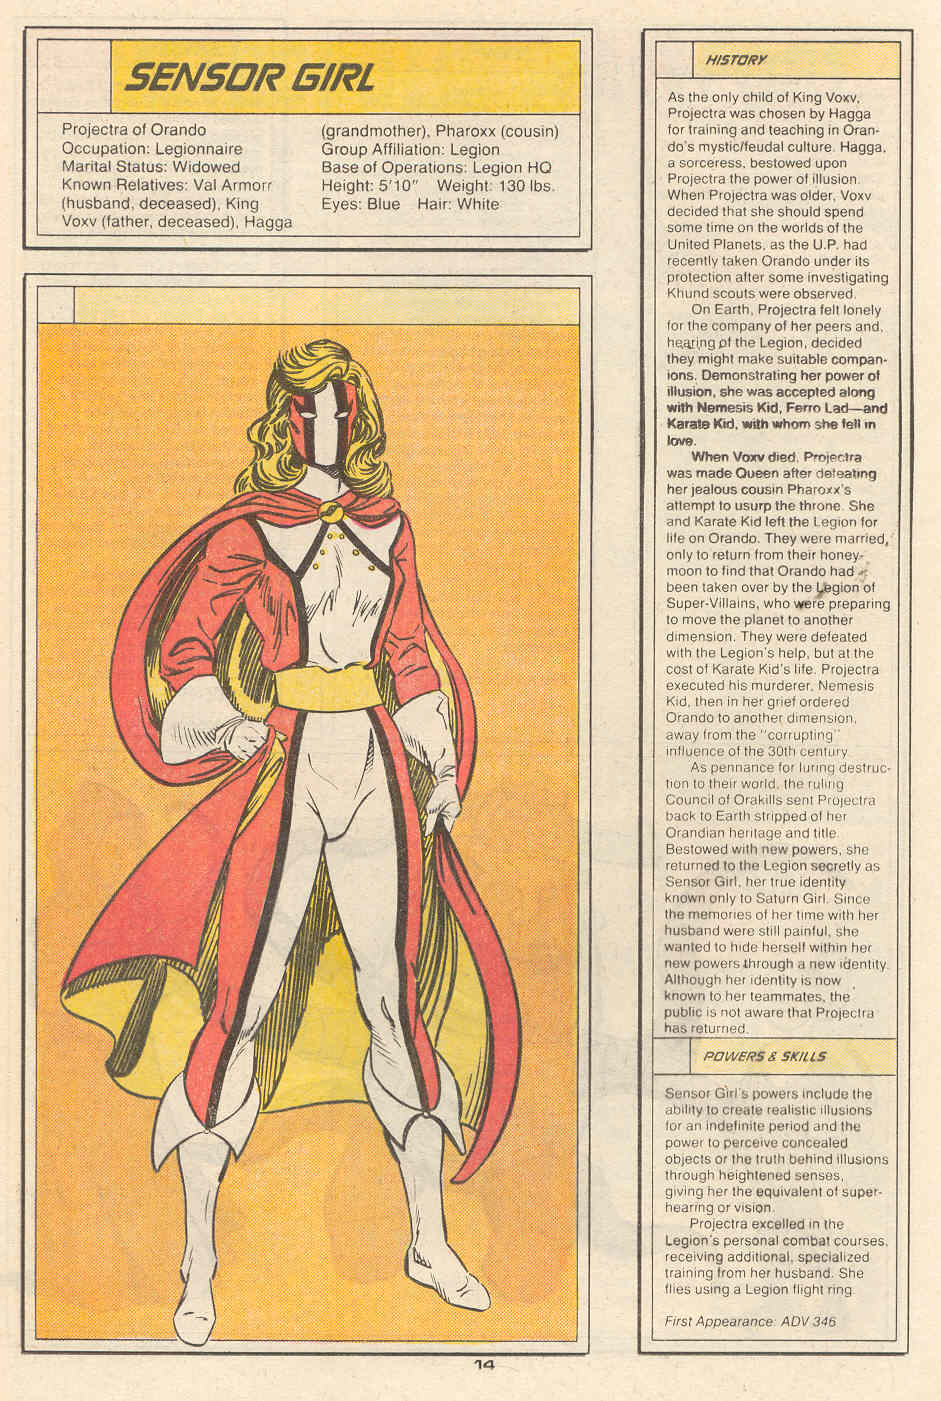 Sensor Girl by Curt Swan and Robert Campanella - Who's Who in the Legion of Super-Heroes #6